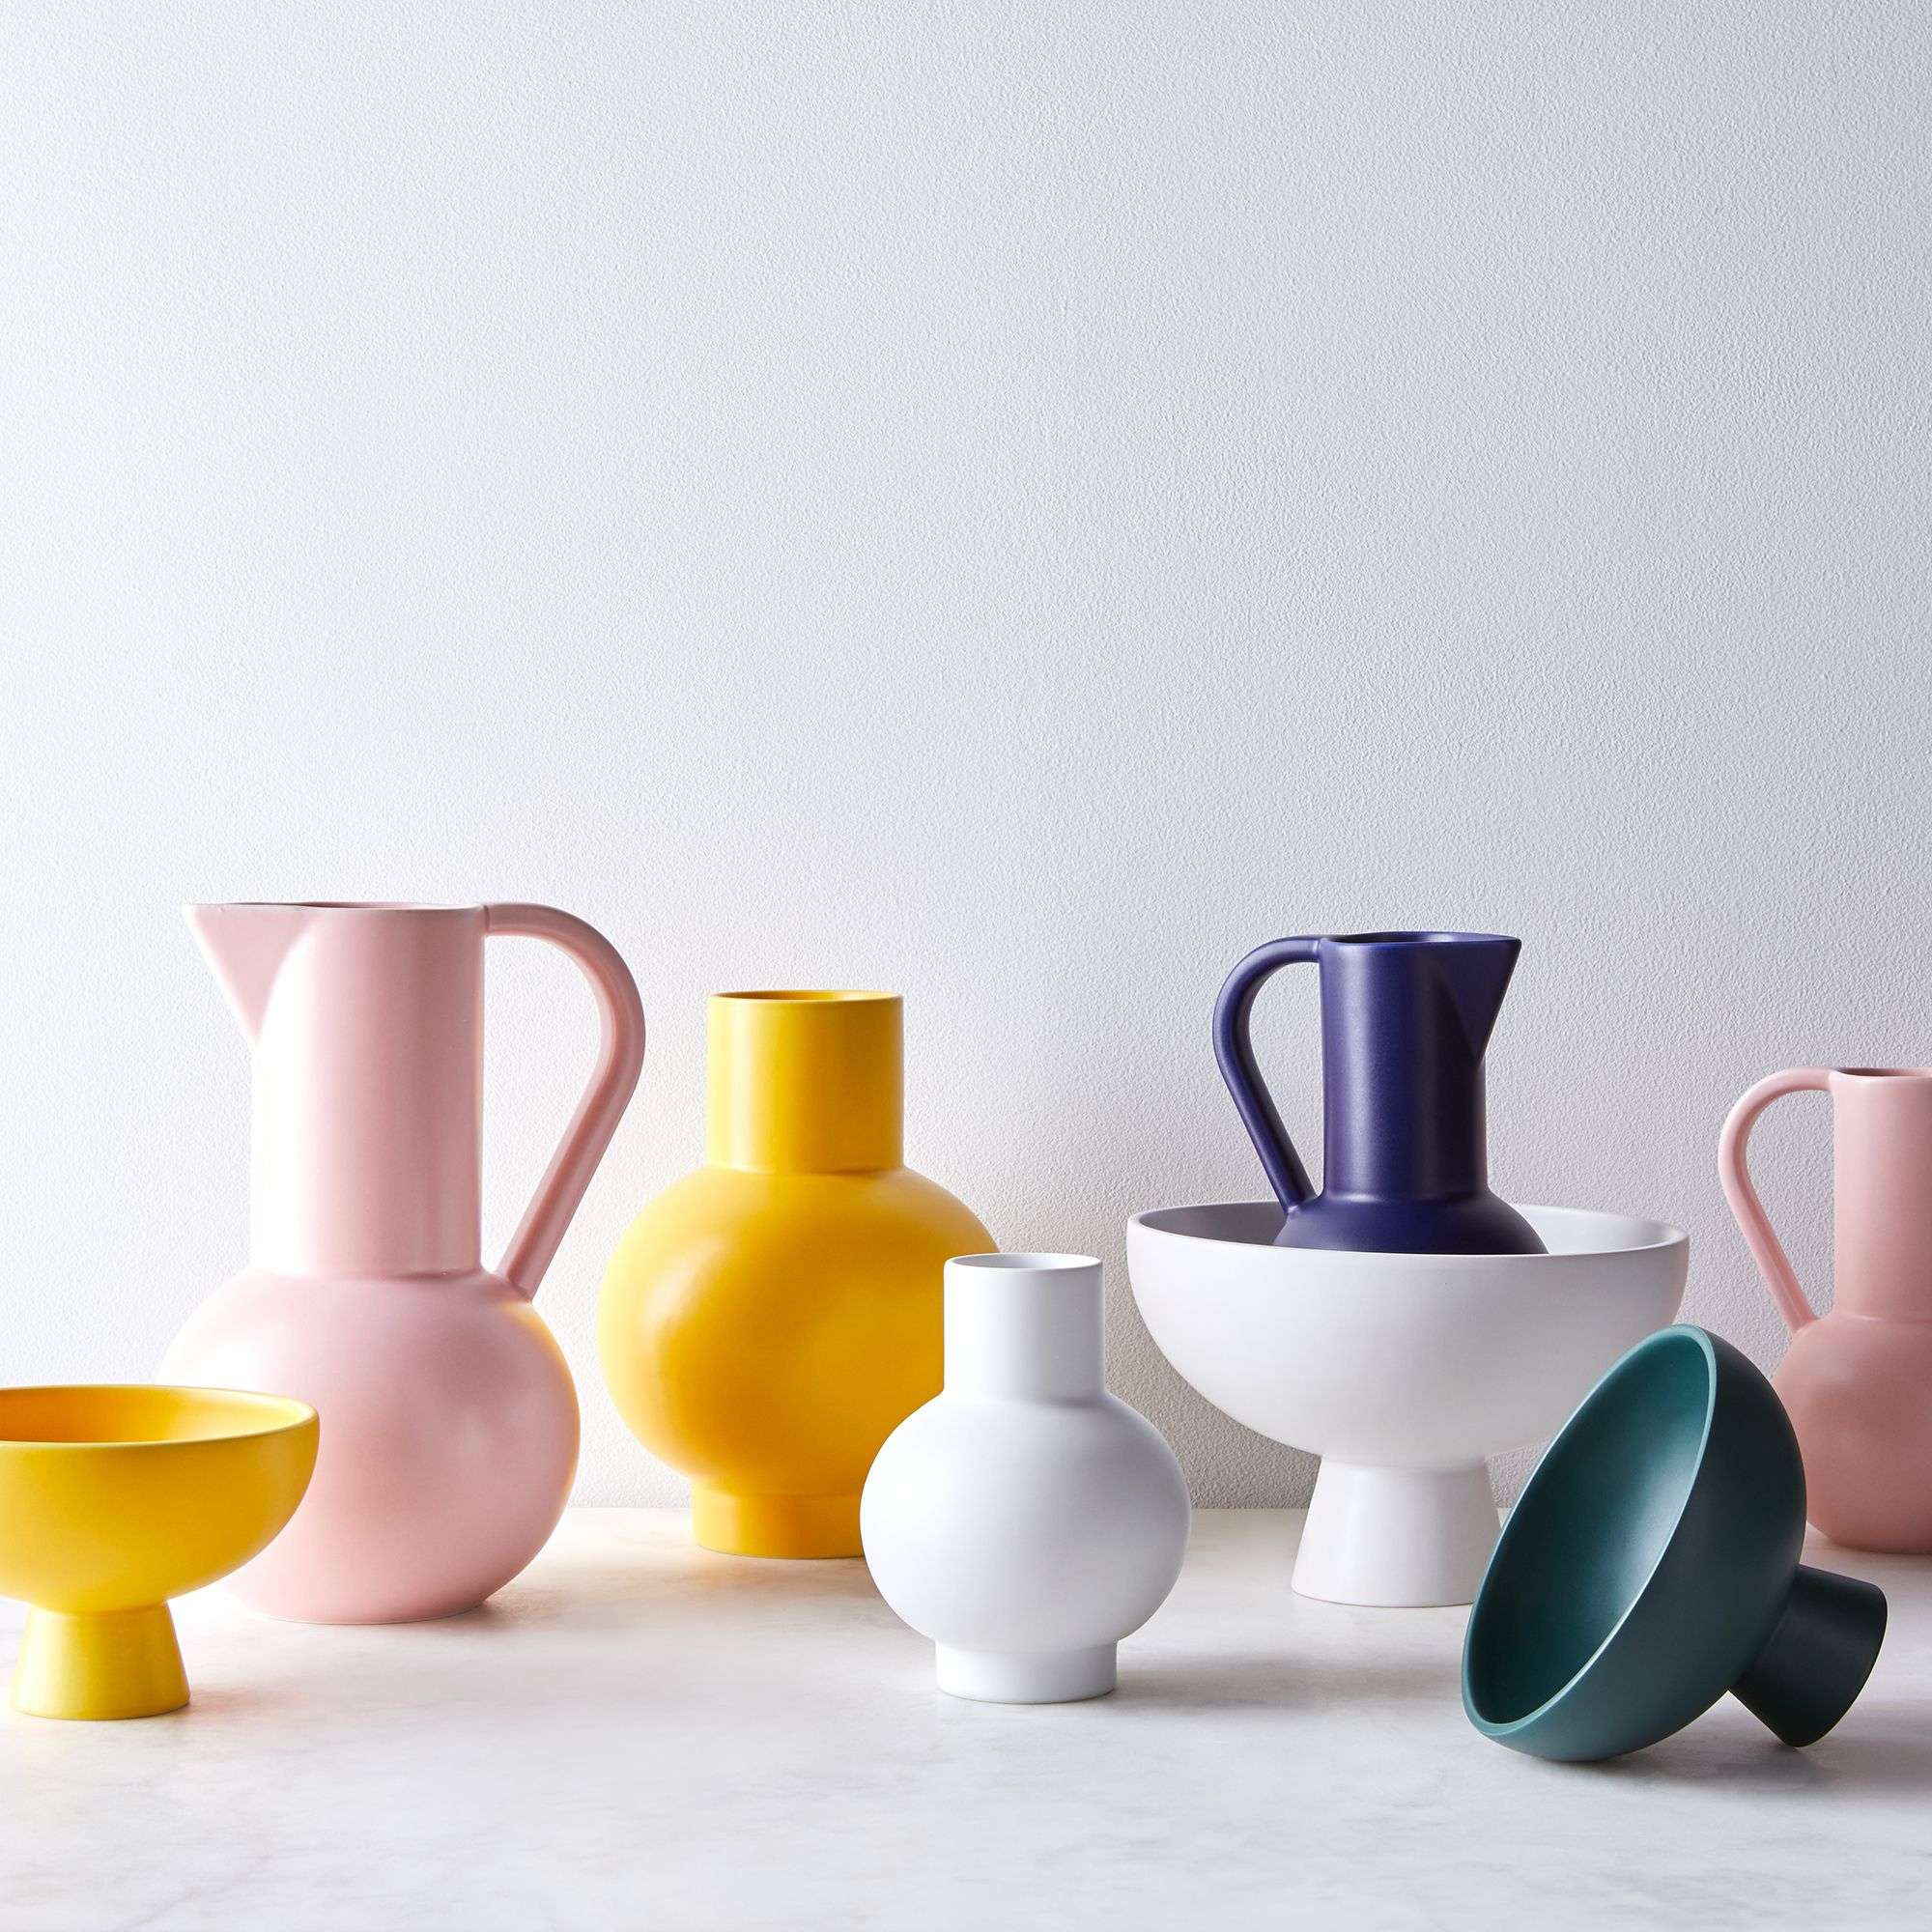 bowls, pitchers, kitchen accents in multiple colors